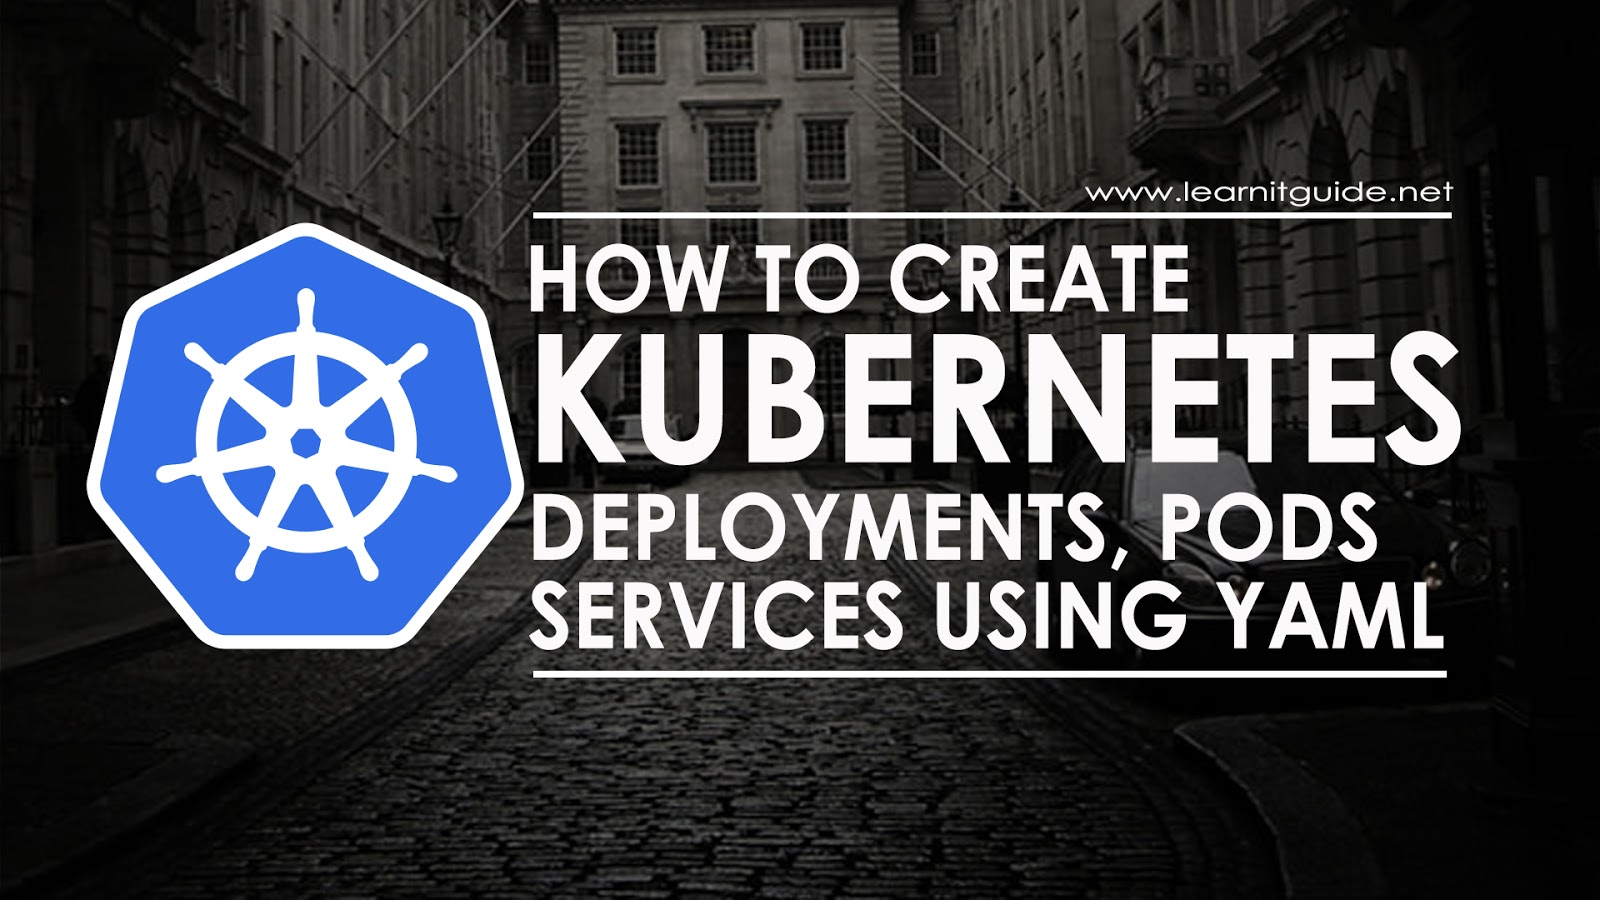 Create Kubernetes YAML for Deployment, Service & Pods